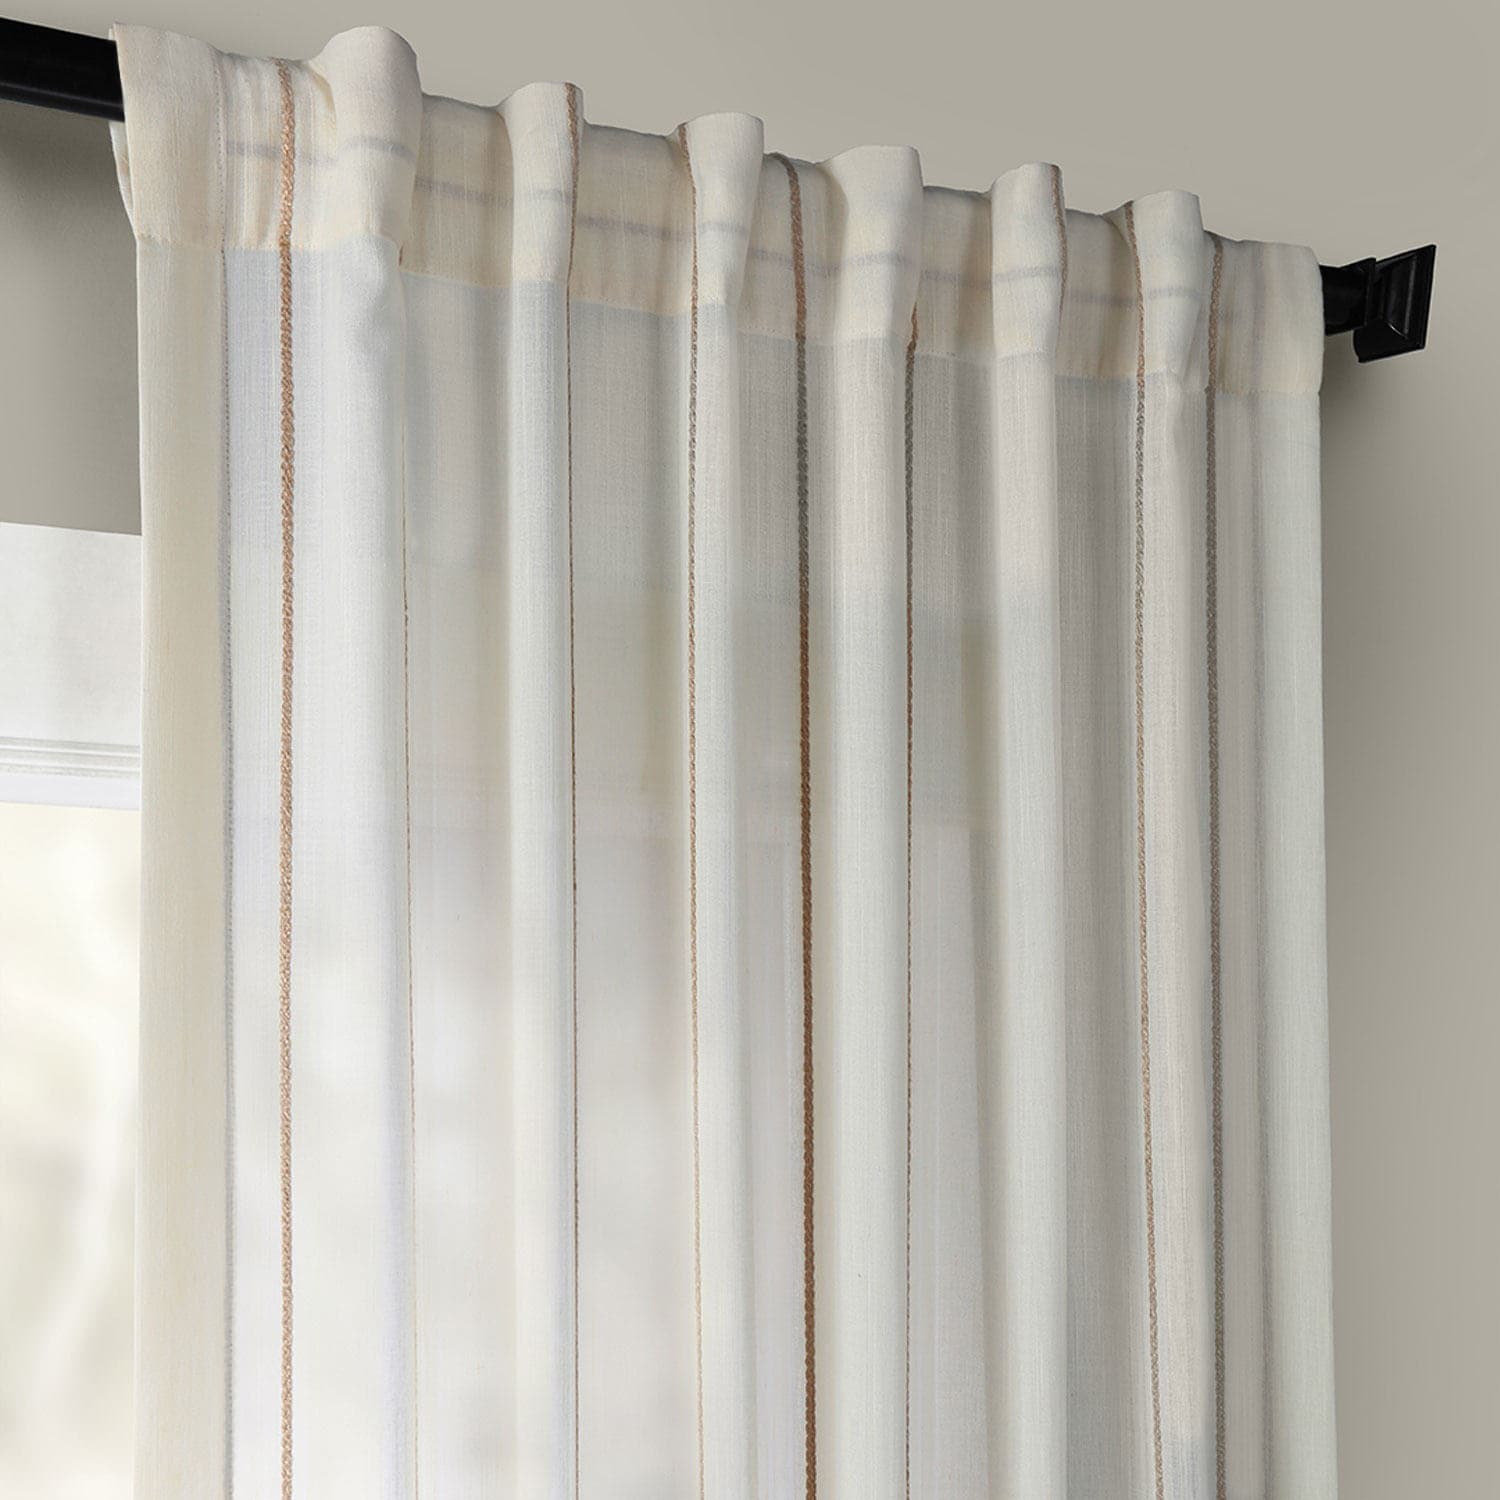 Linen Stripe Kitchen Curtains: Buy Aruba Gold Striped Linen Sheer Curtains